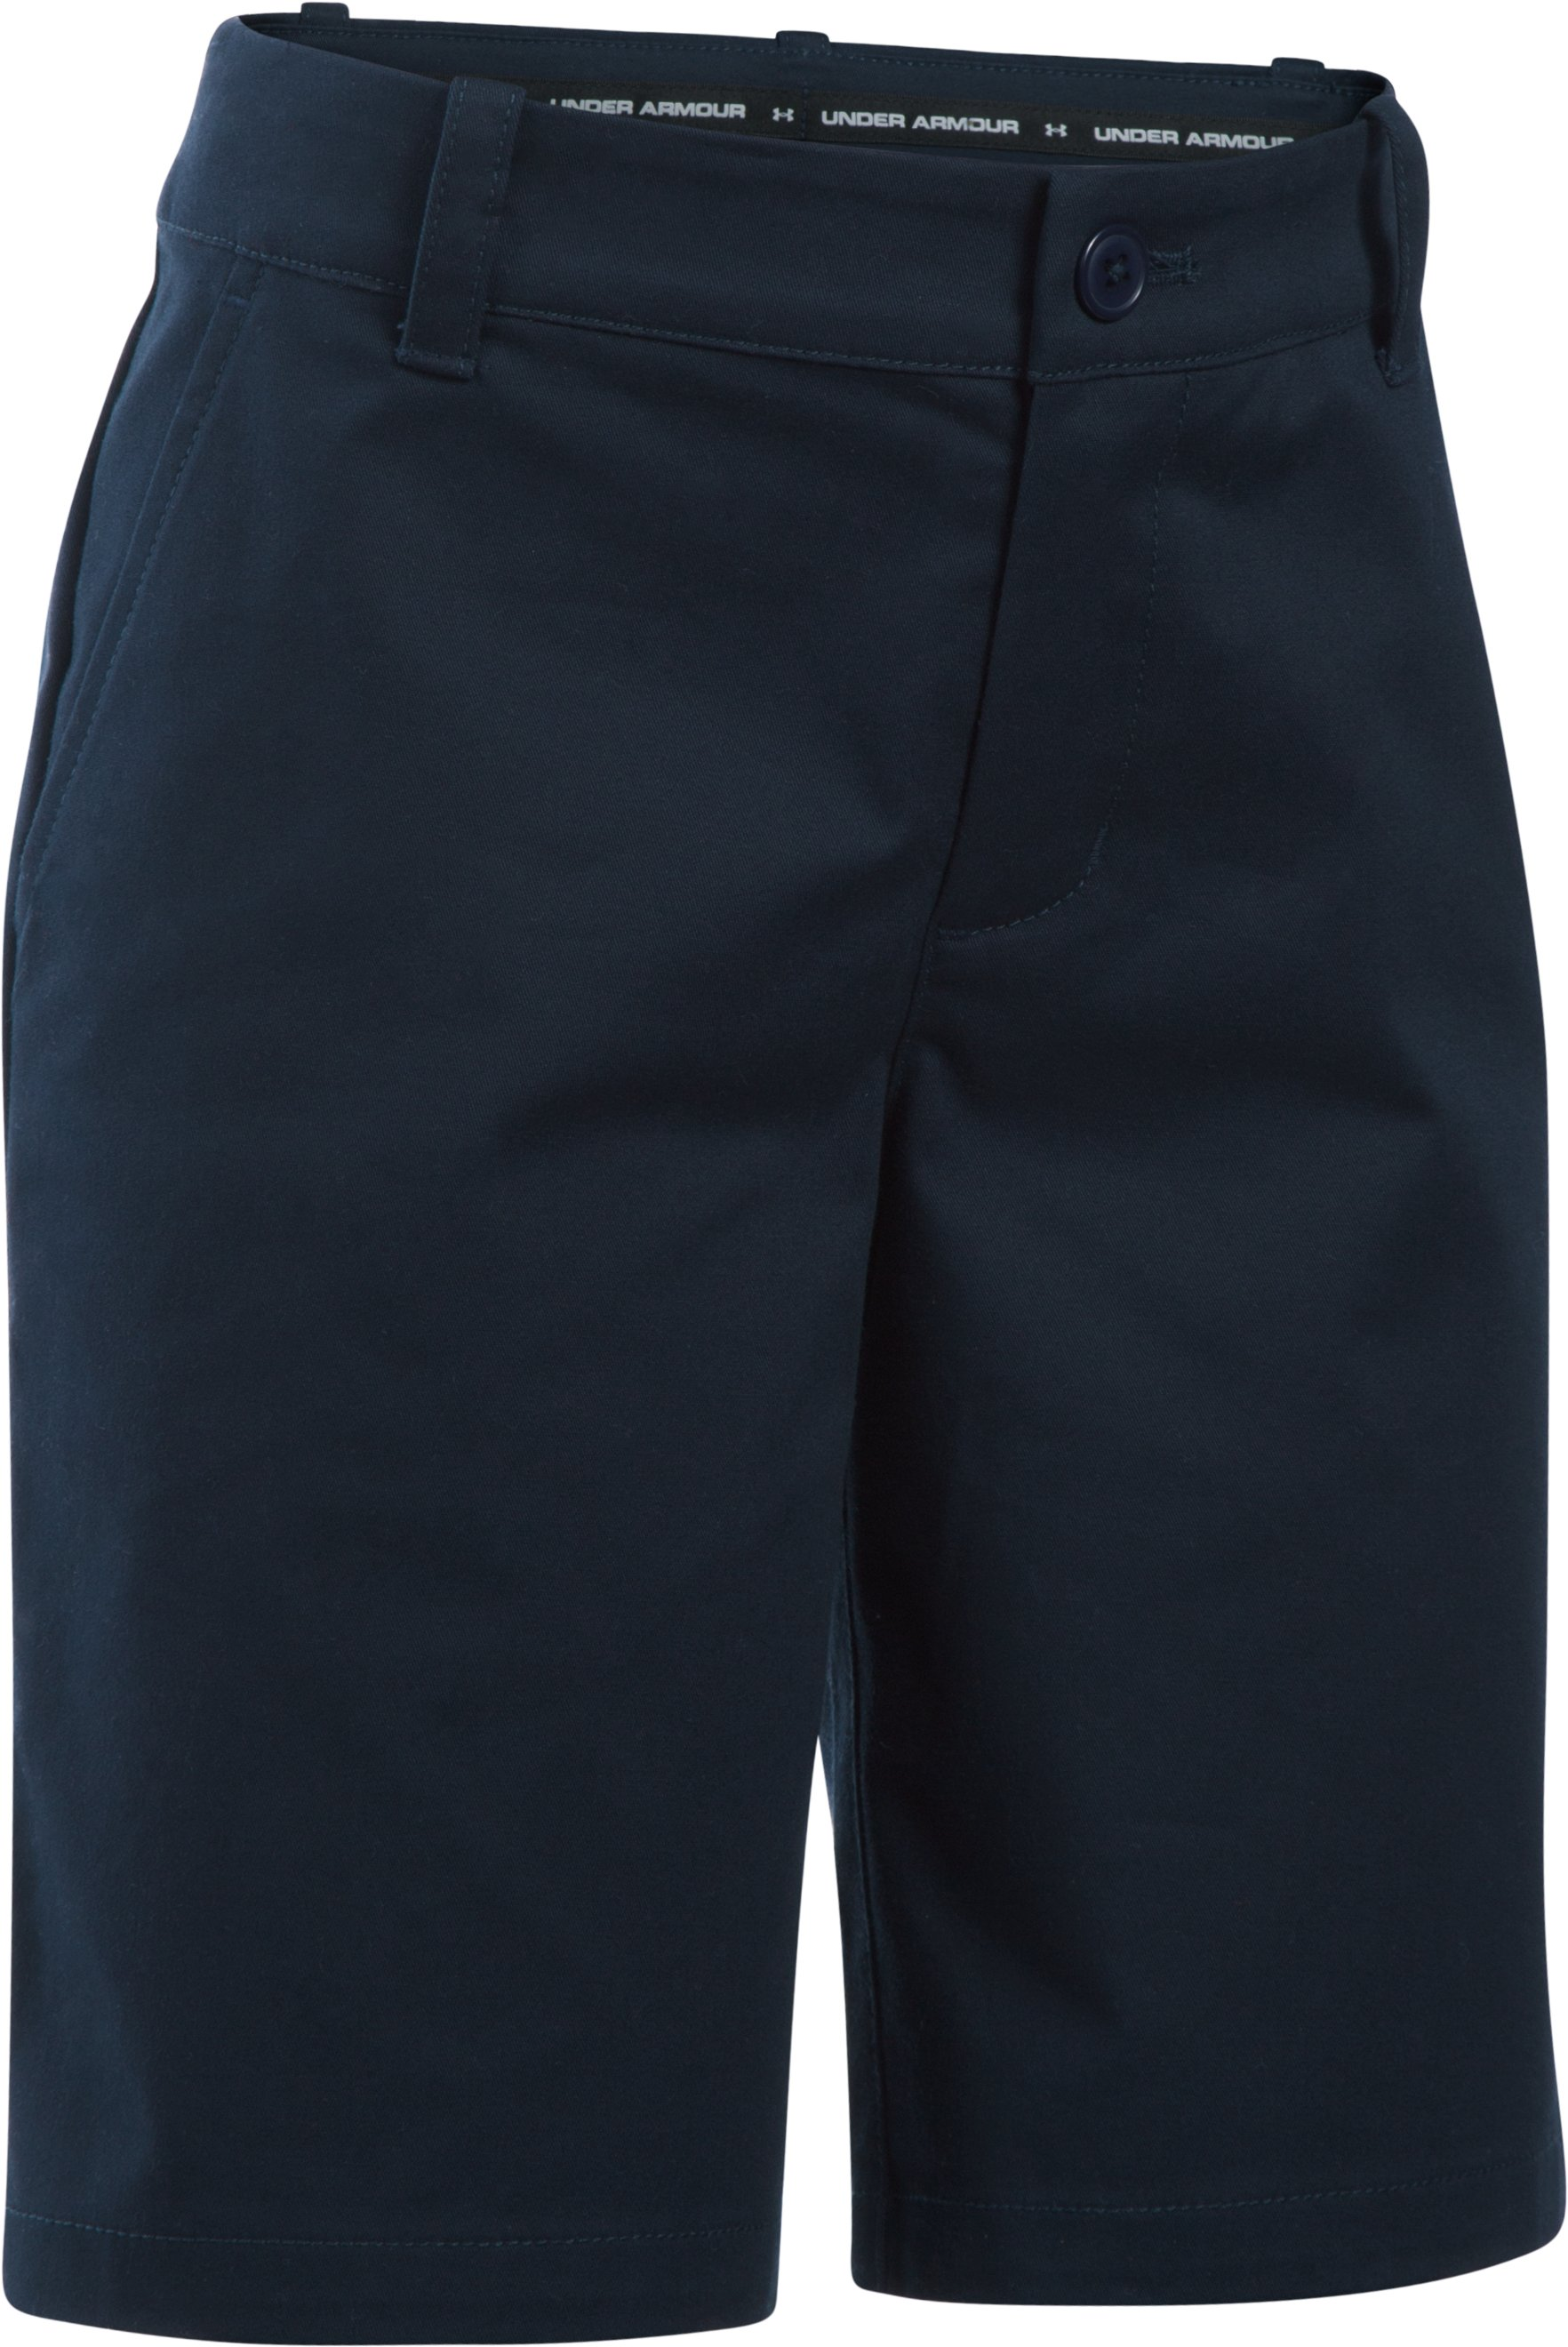 Girls' Pre-School UA Uniform Chino Shorts, GLORY BLUE